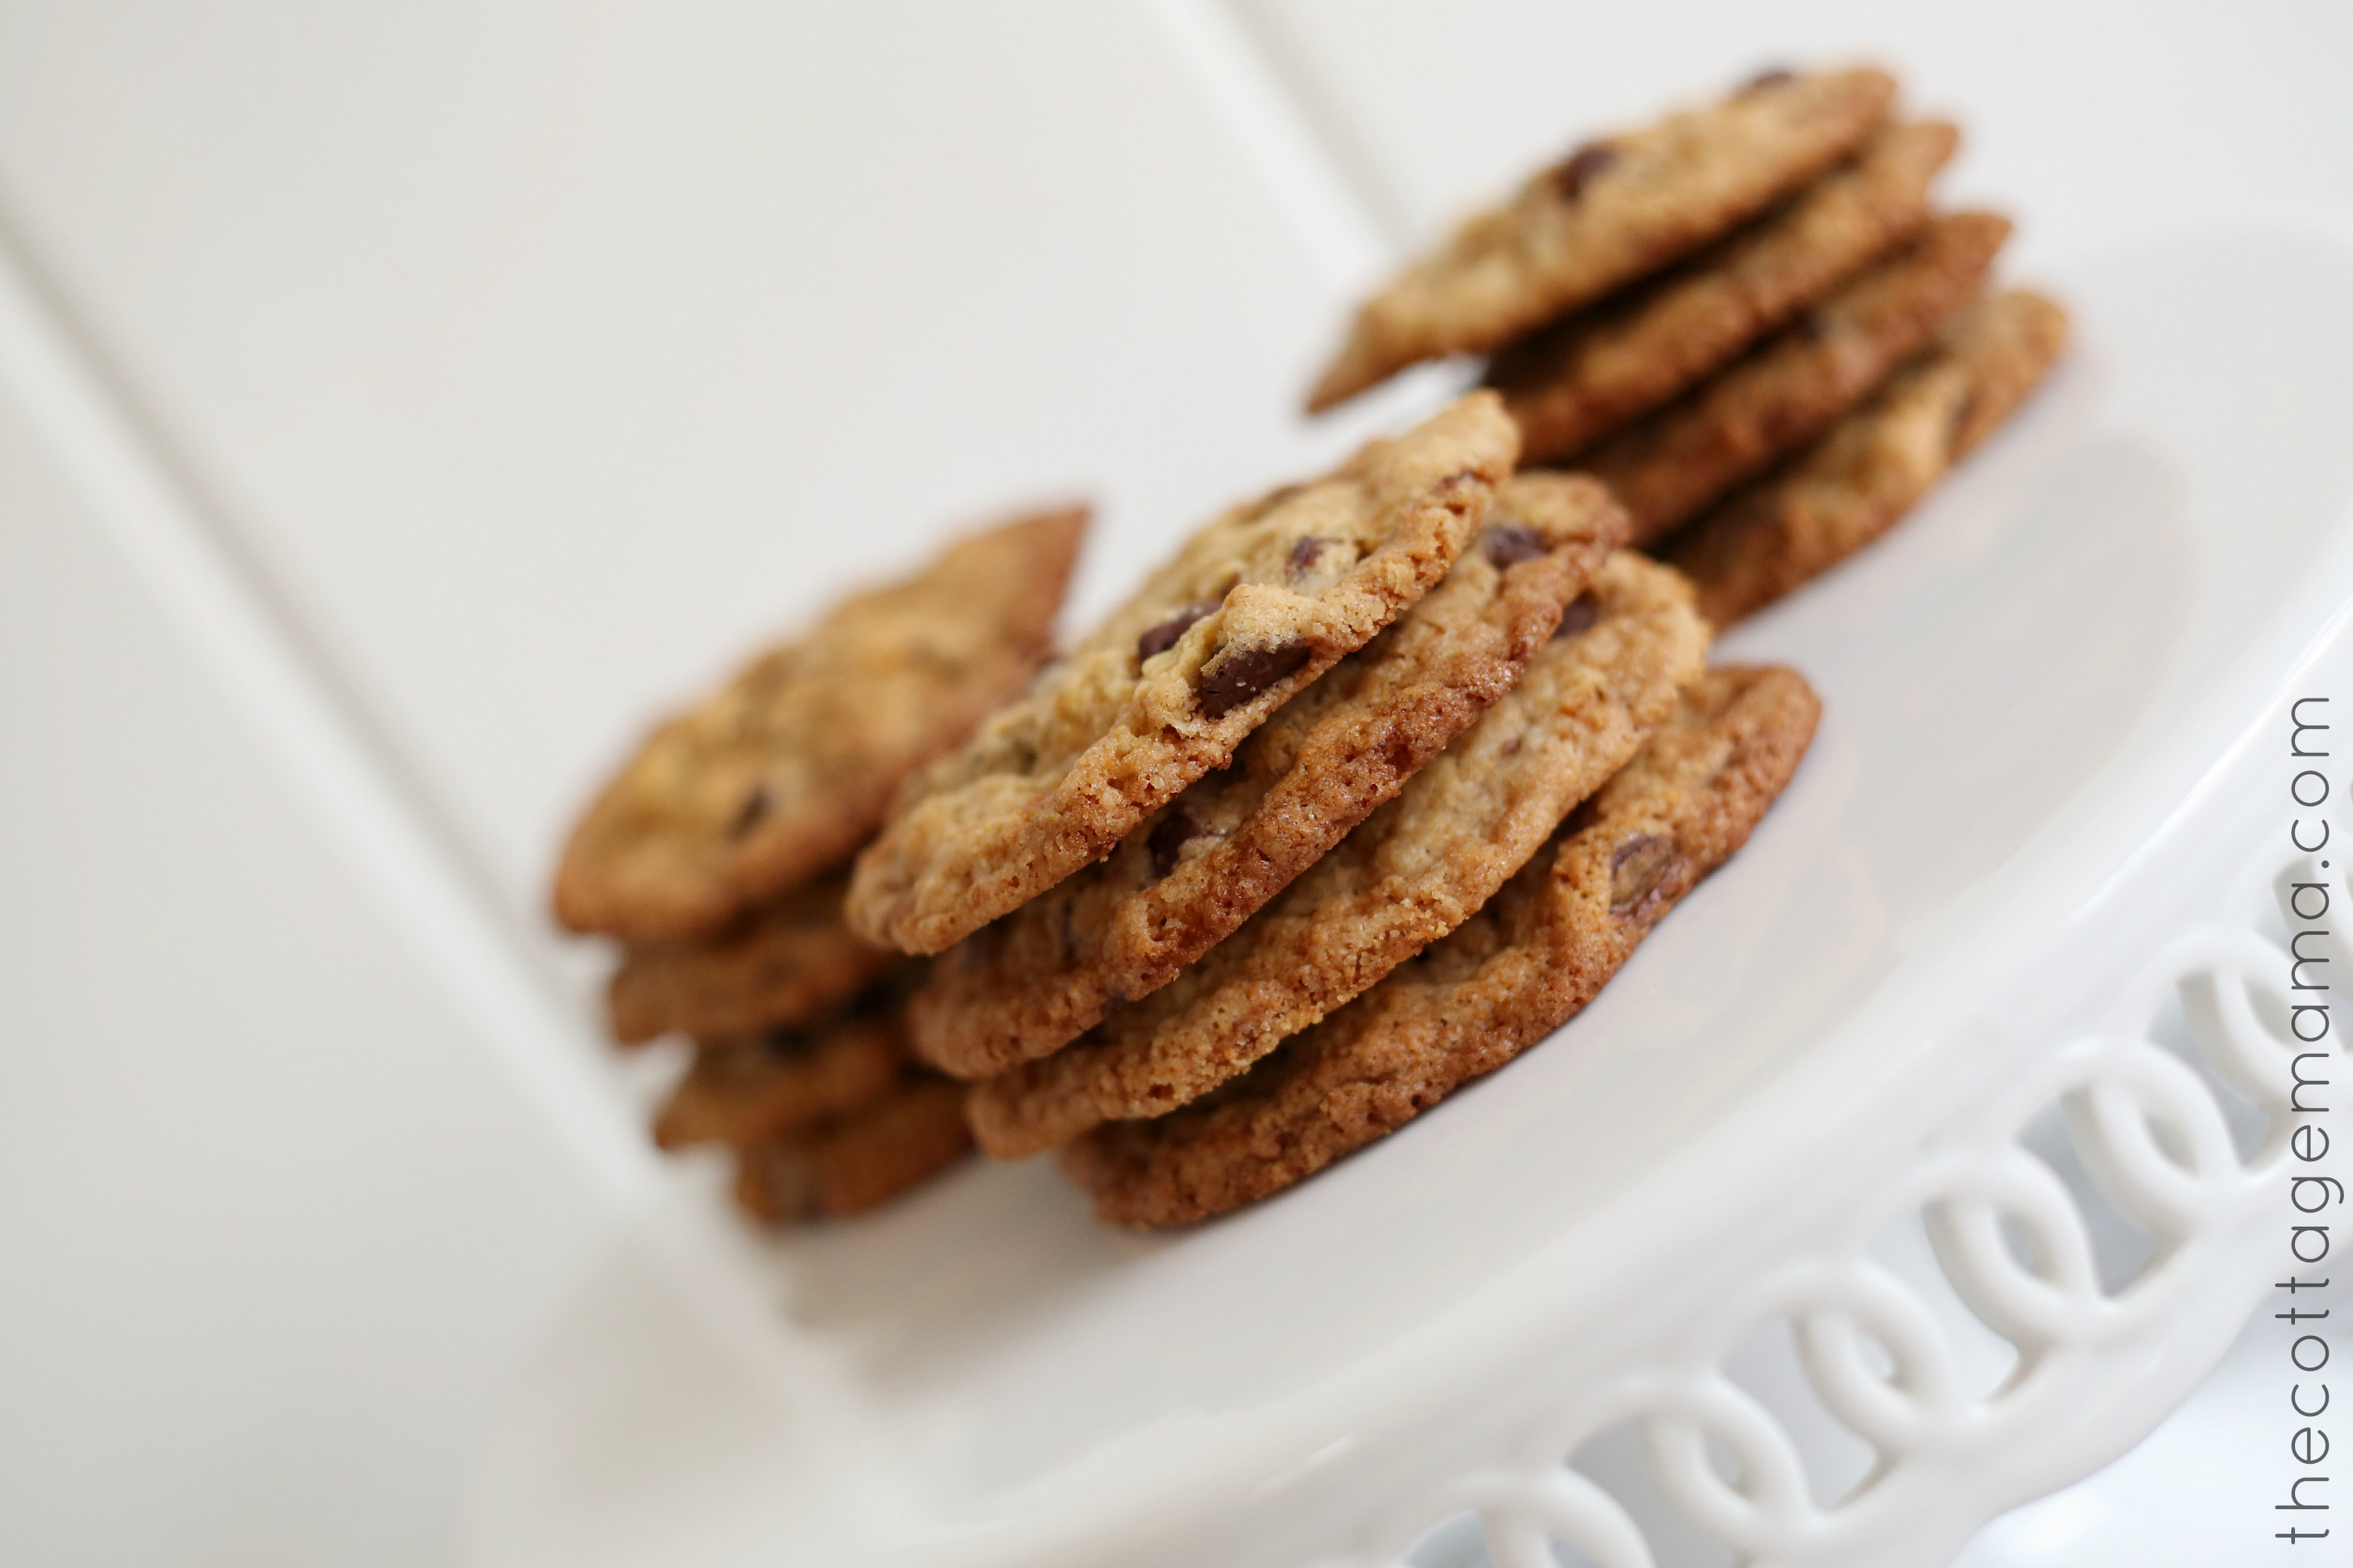 Crispy and Chewy Chocolate Chip Cookie Recipe - The Cottage Mama